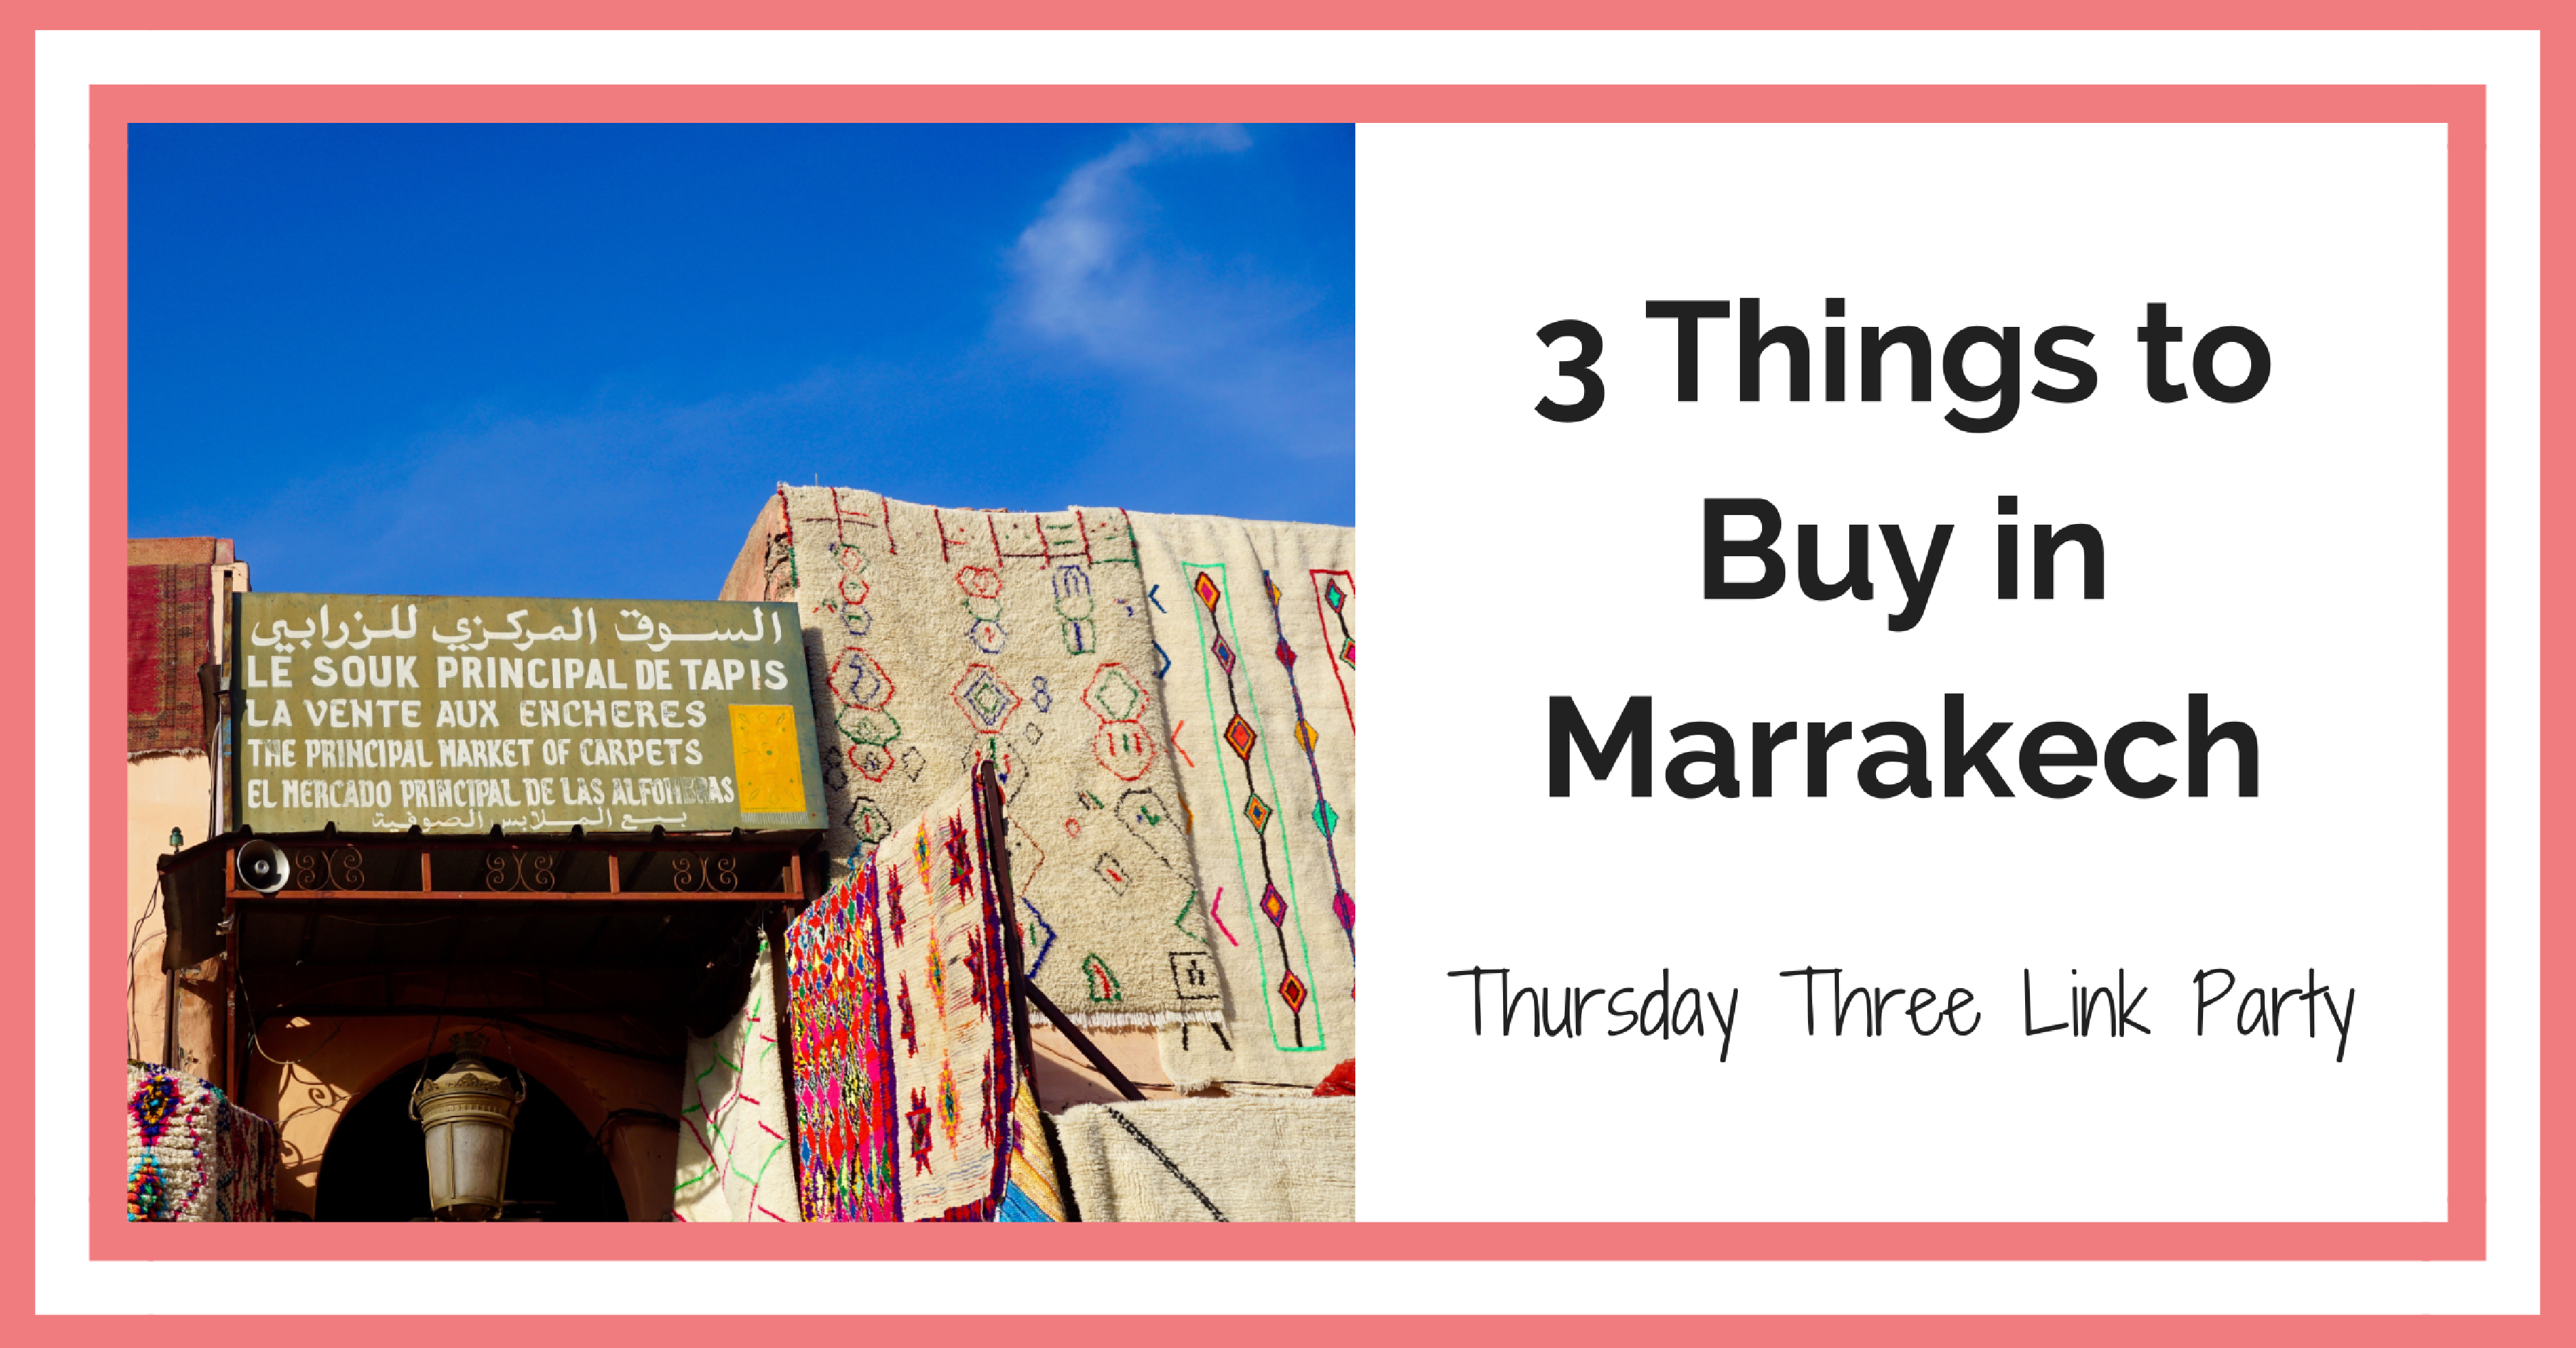 3 Things To Buy In Marrakech Thursday 3 Link Party